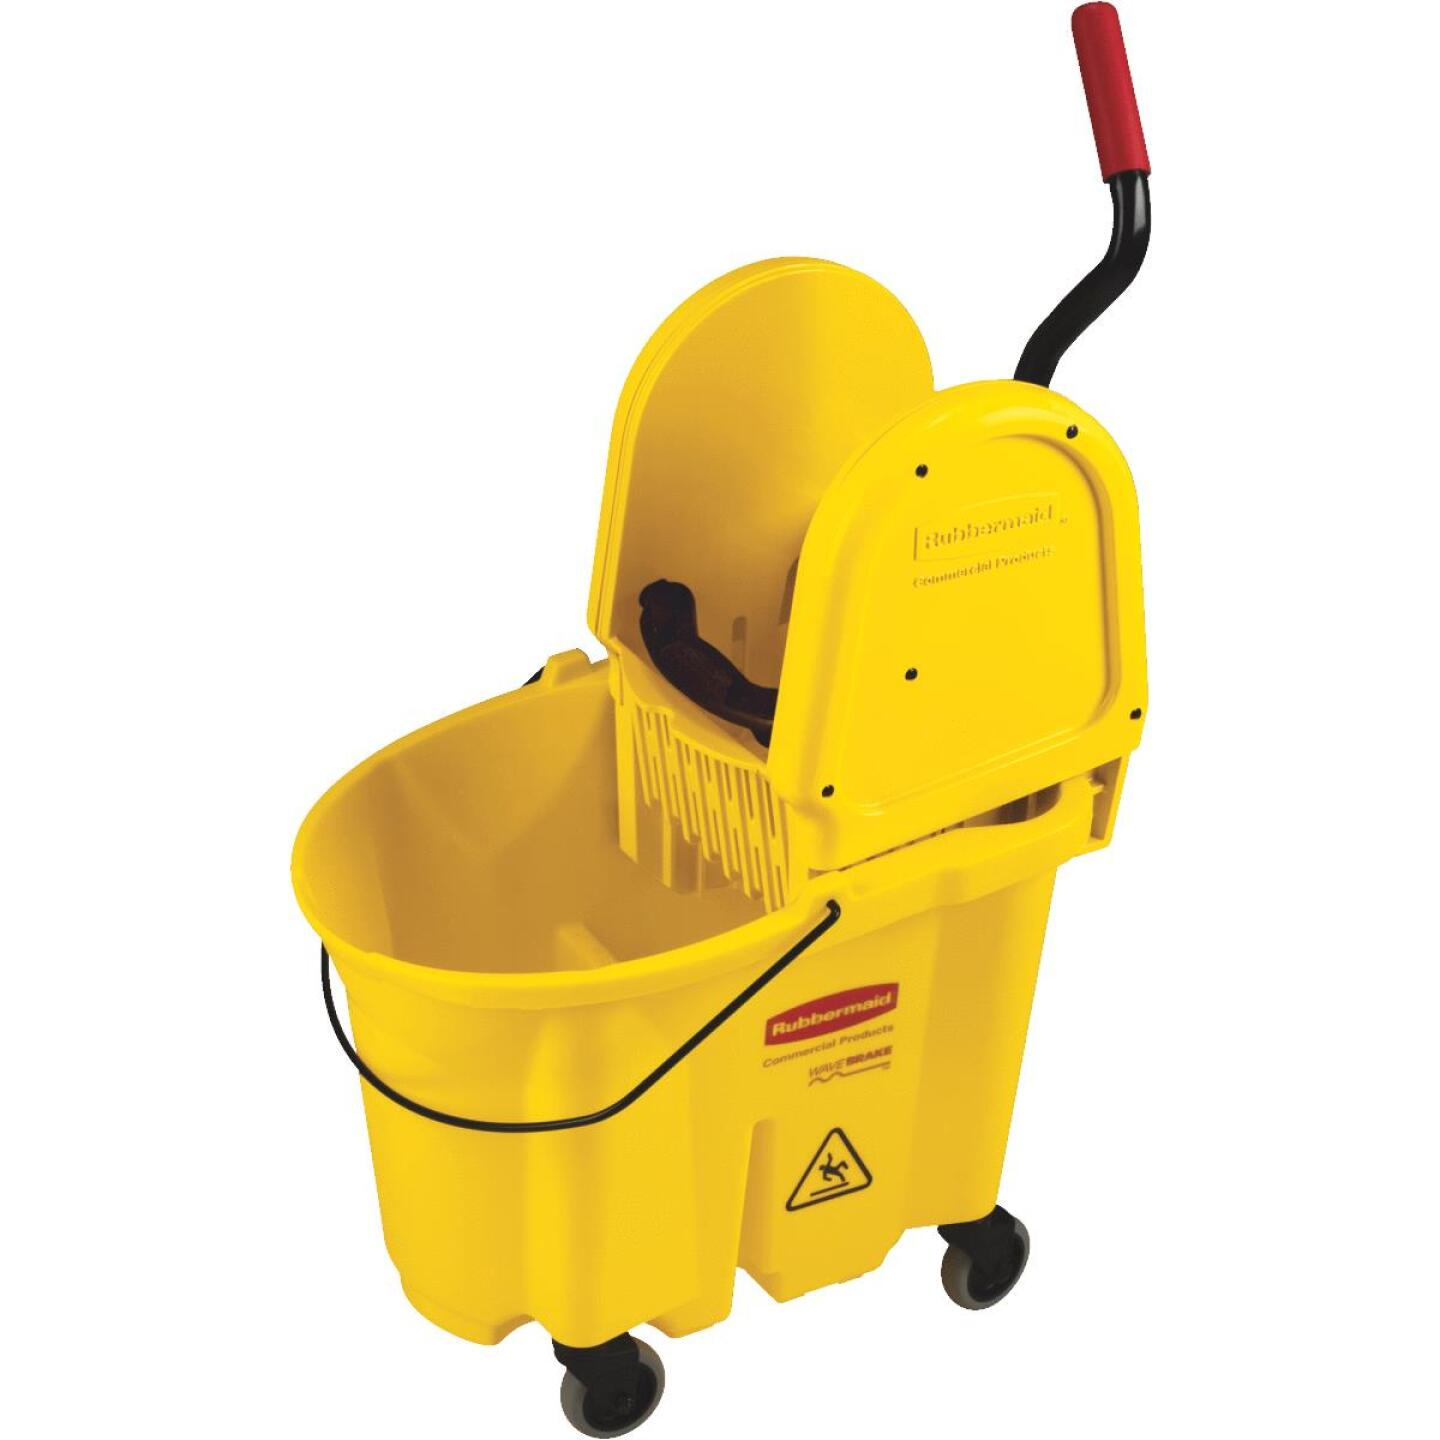 Rubbermaid Commercial WaveBrake 35 Qt. Down Press Combo Mop Bucket Image 1